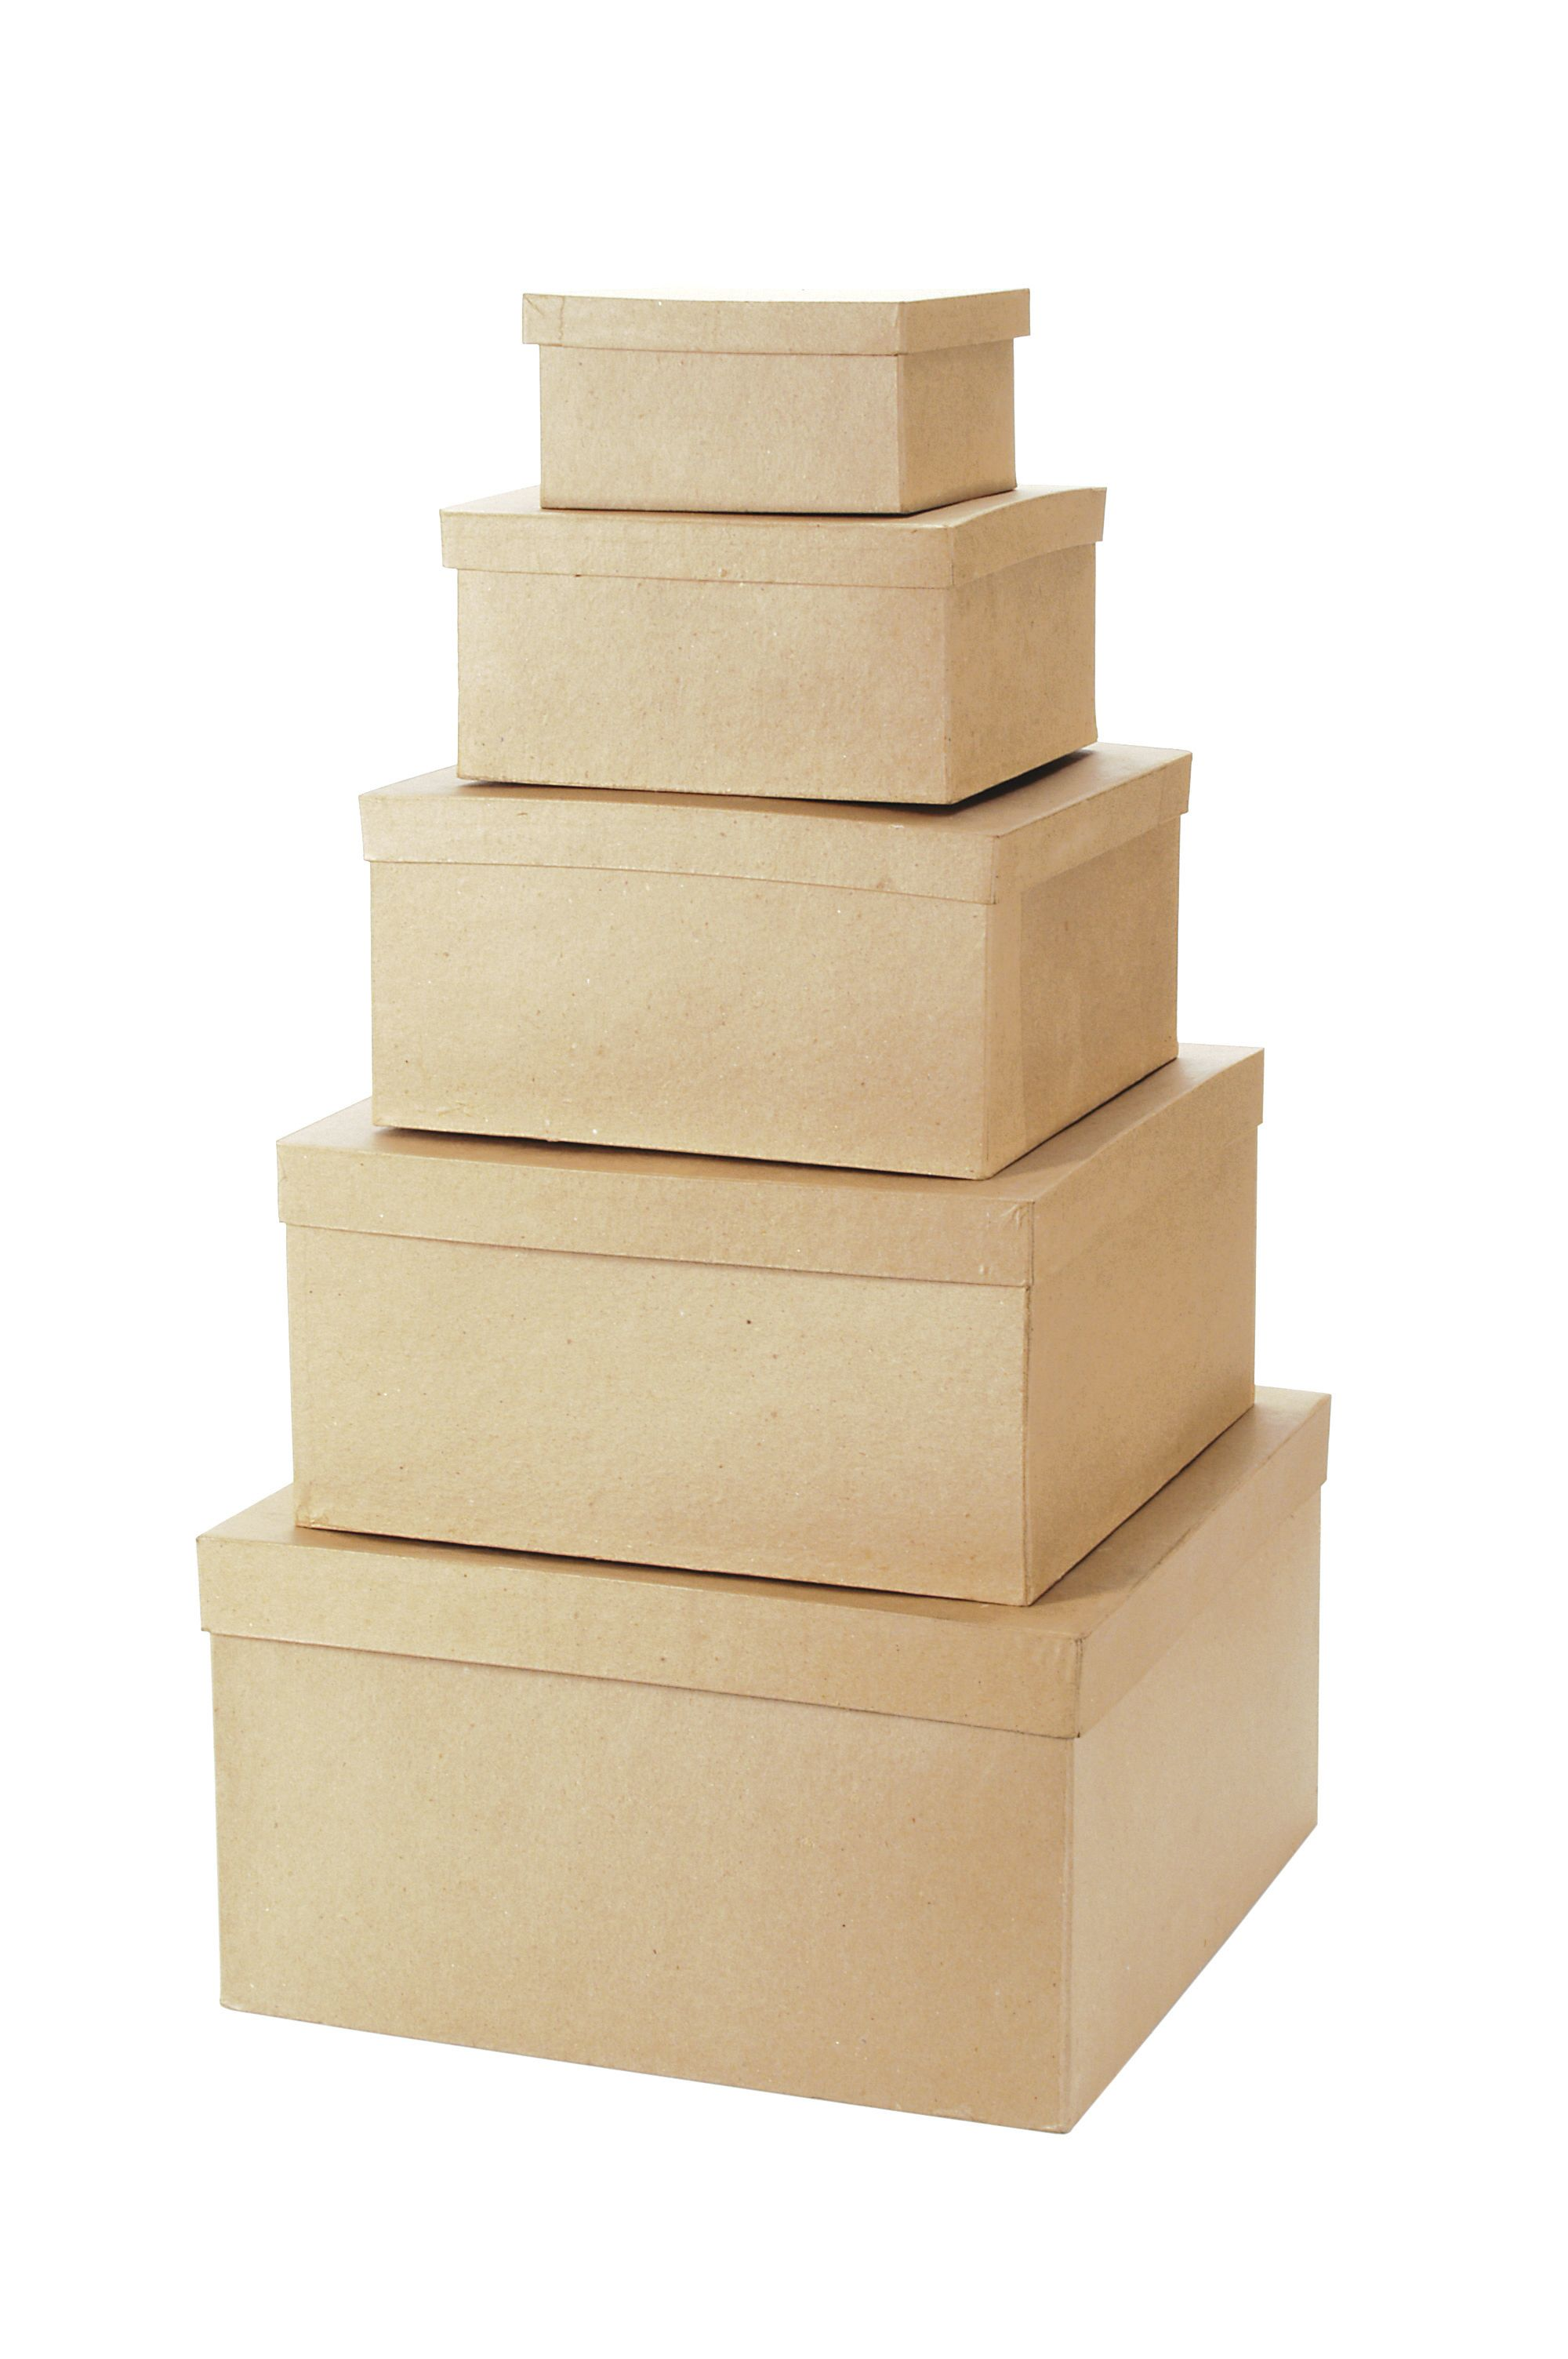 Darice Paper Mache Boxes with Lids, Square, Set of 5